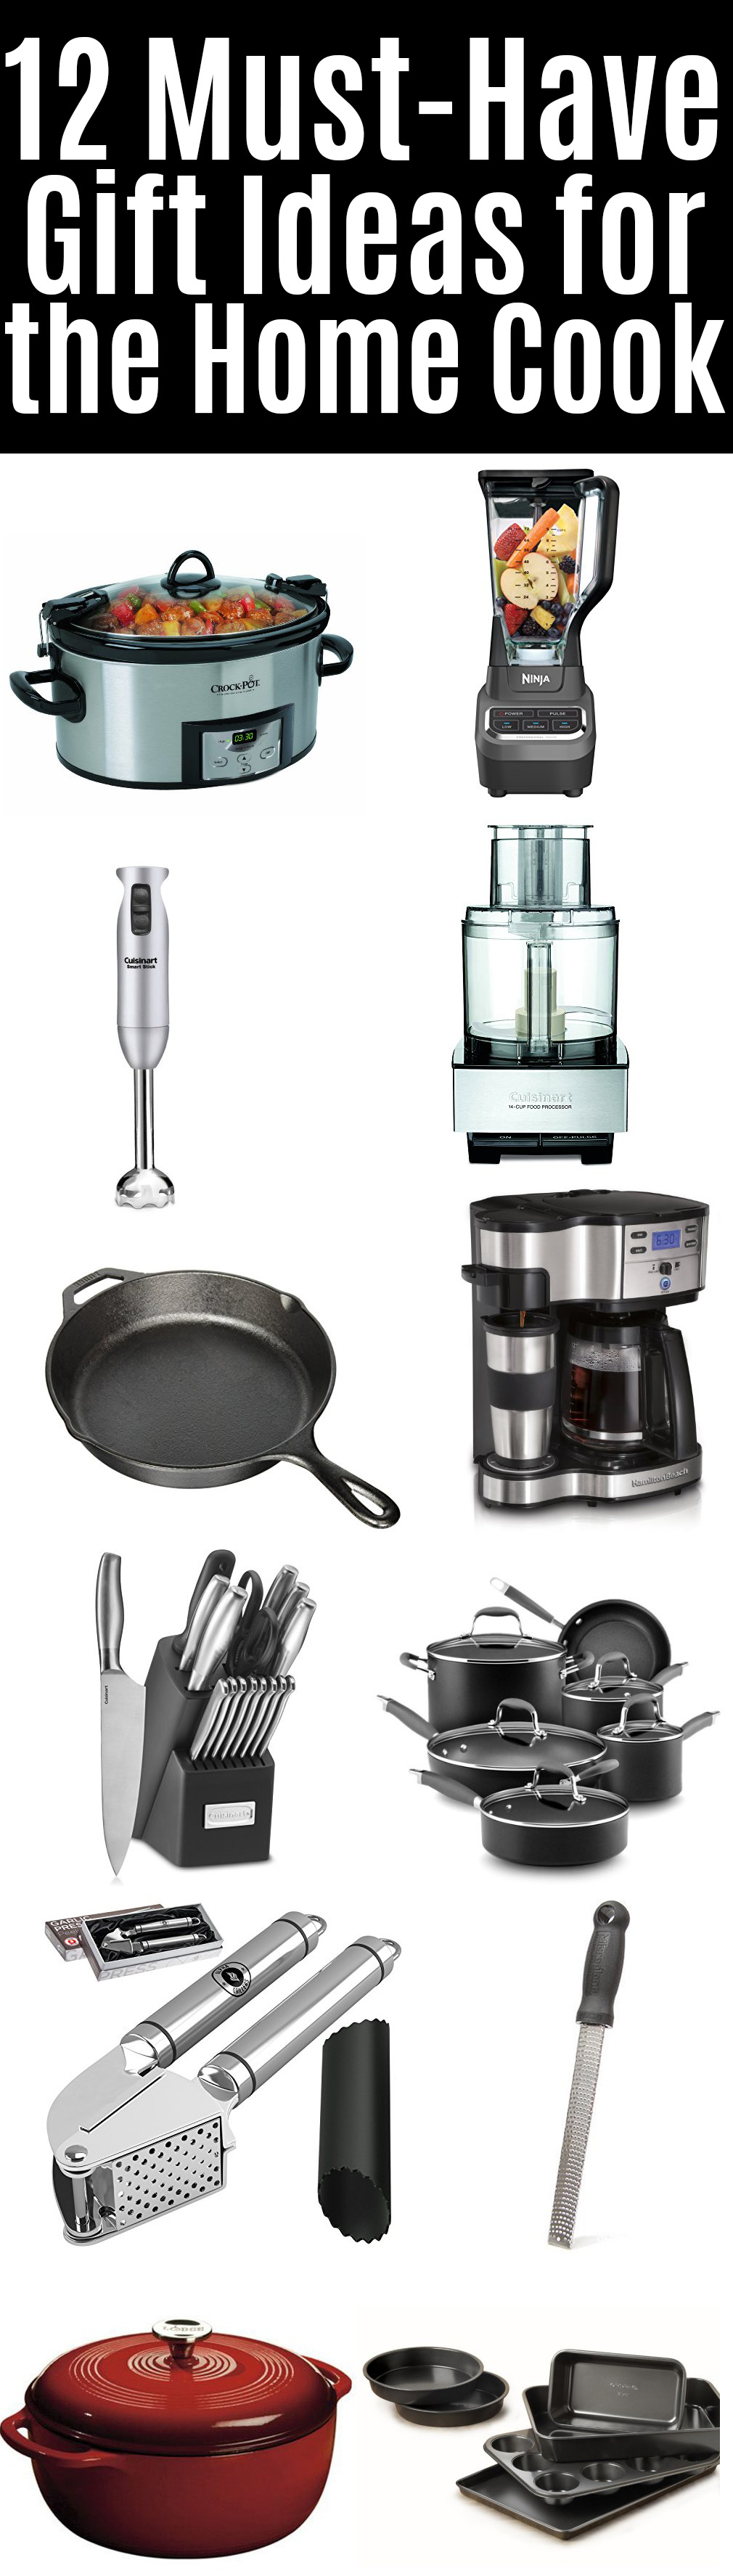 12 Must-Have Gift Ideas for the Home Cook | beckysbestbites.com